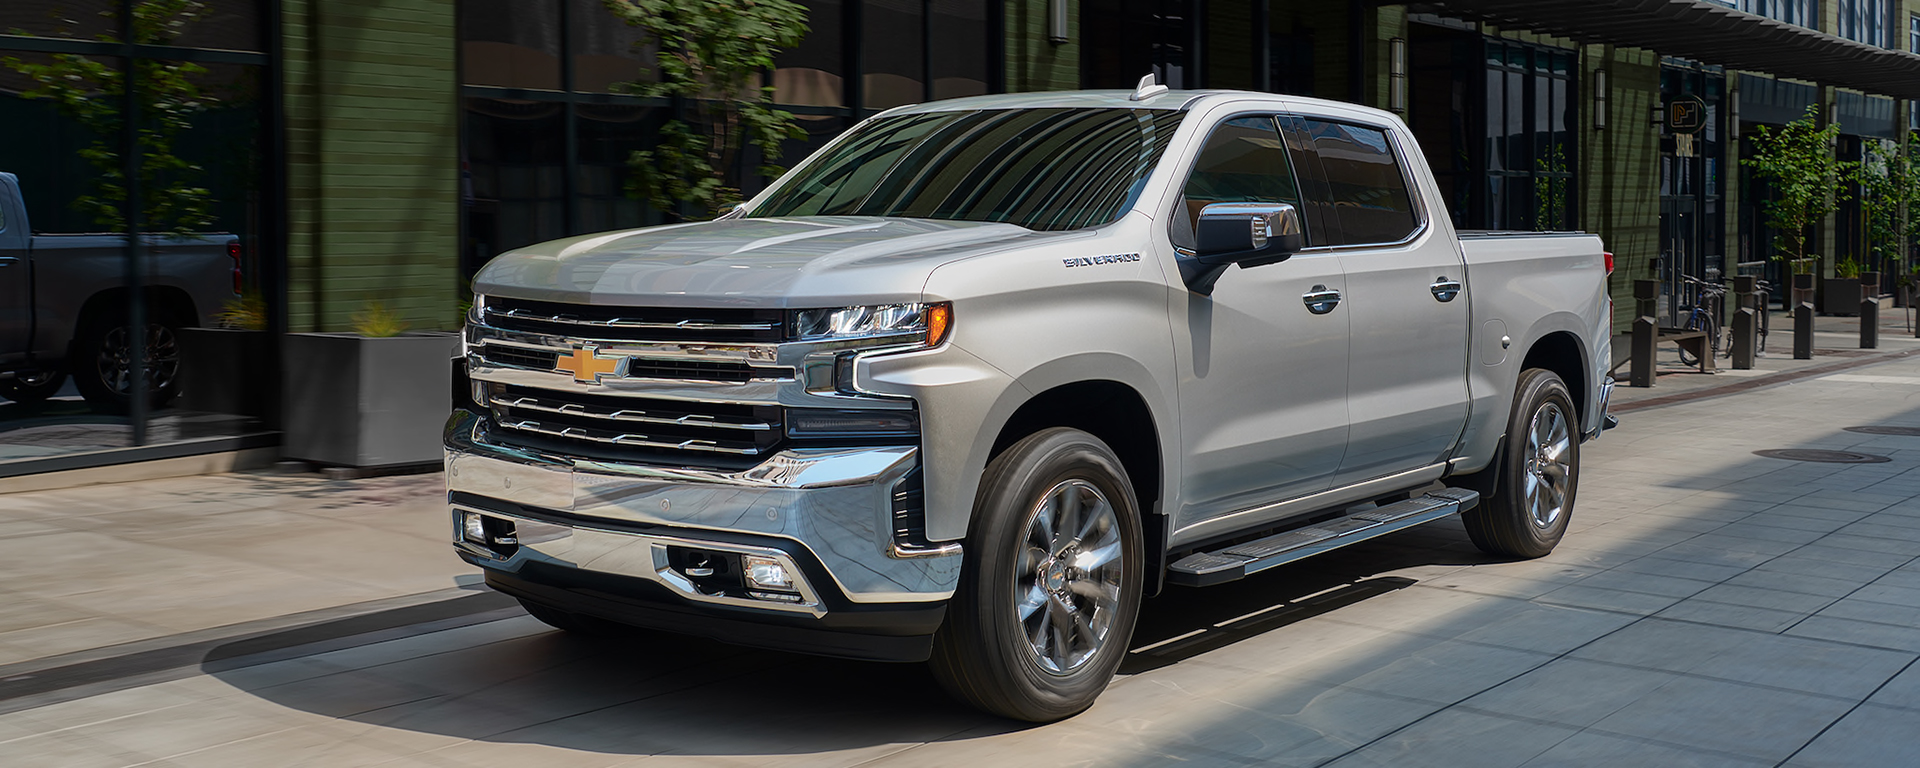 2020 Chevrolet Silverado Safety